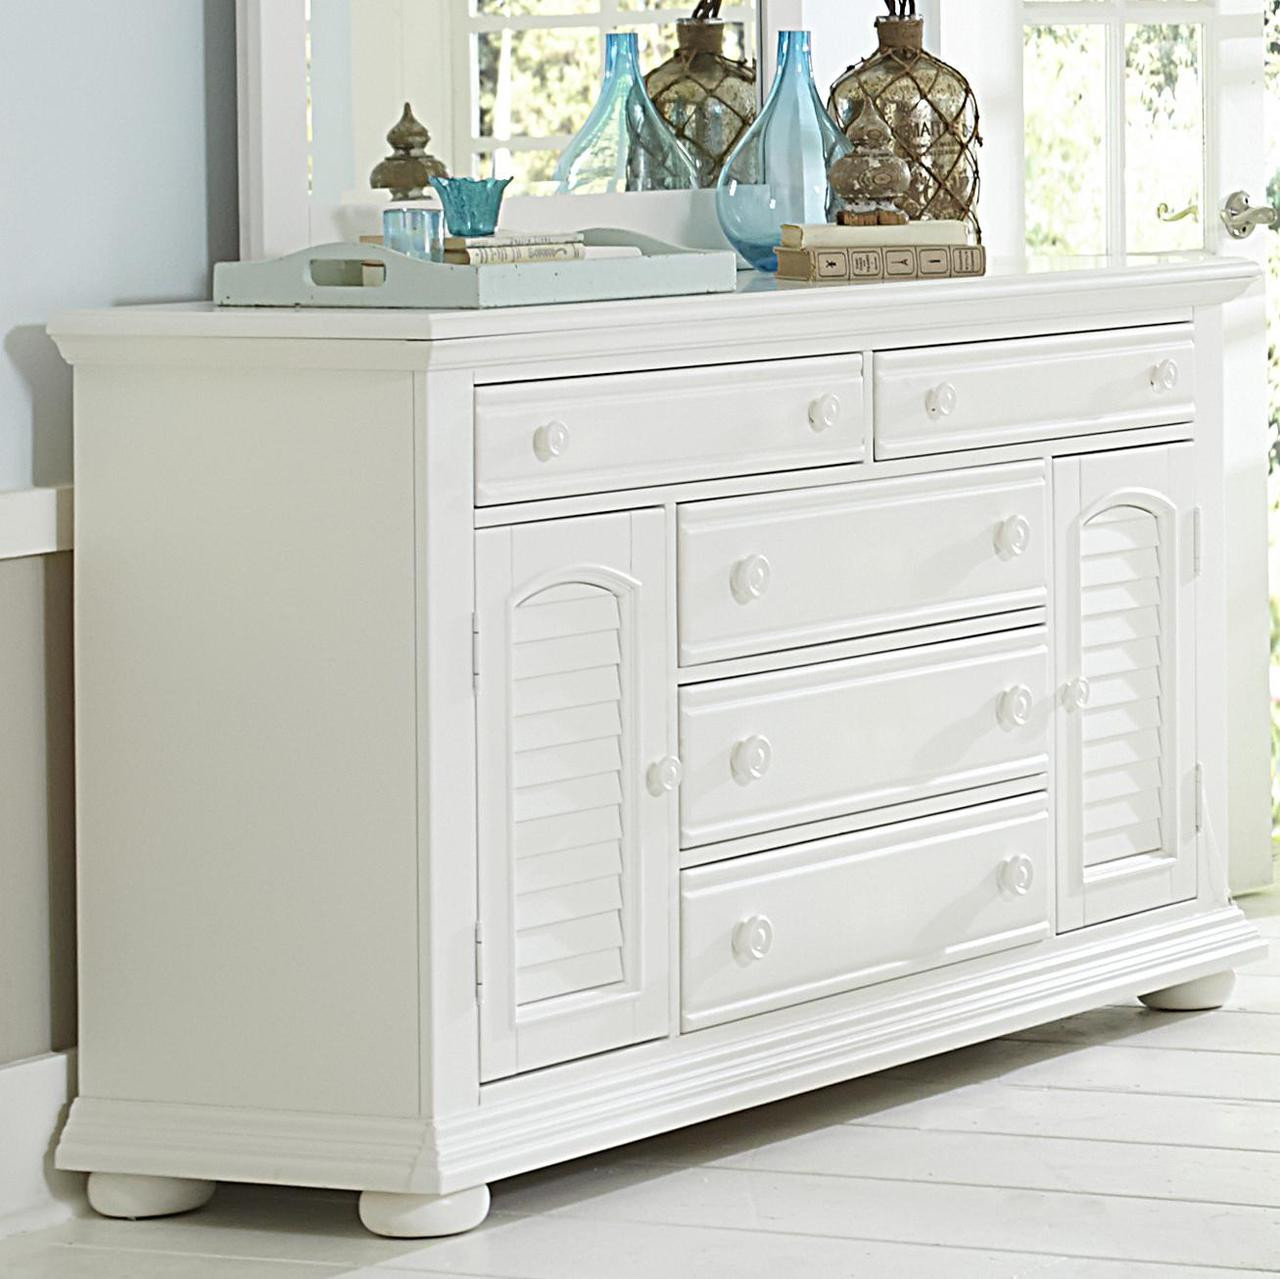 The Summer House Dresser Mirror Sold At Rose Brothers Furniture Serving Wilmington And